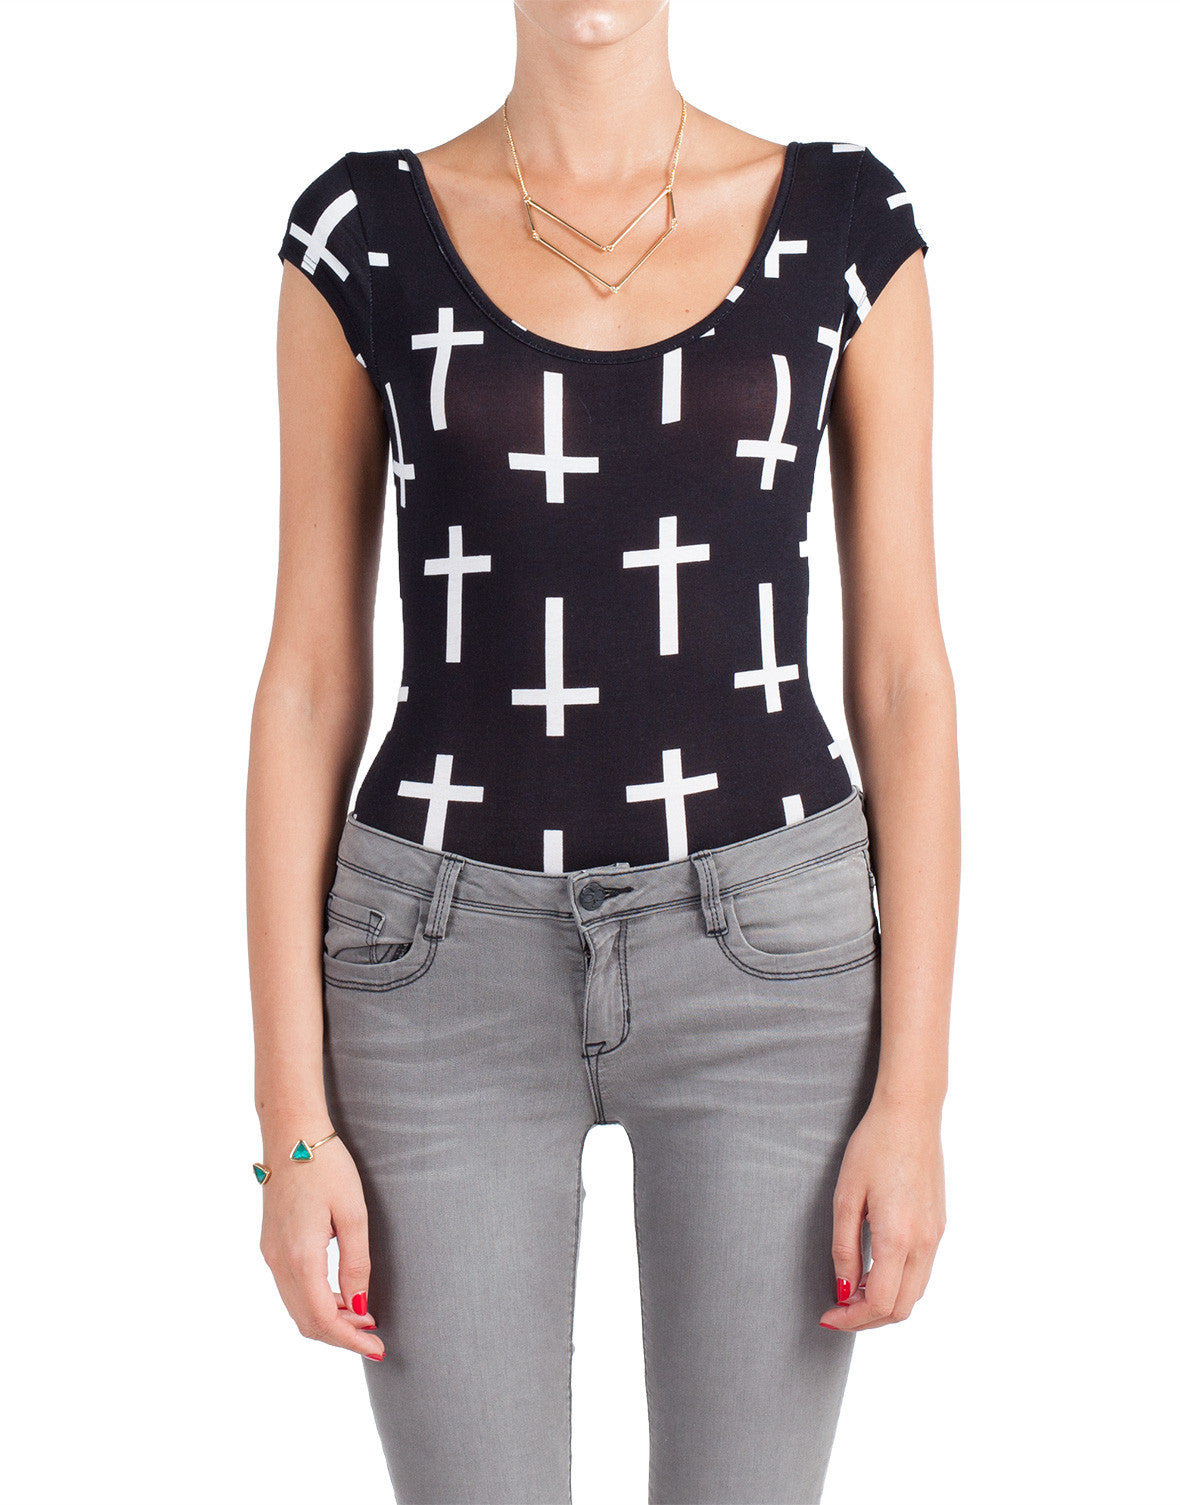 Crosses Bodysuit - Large - 2020AVE